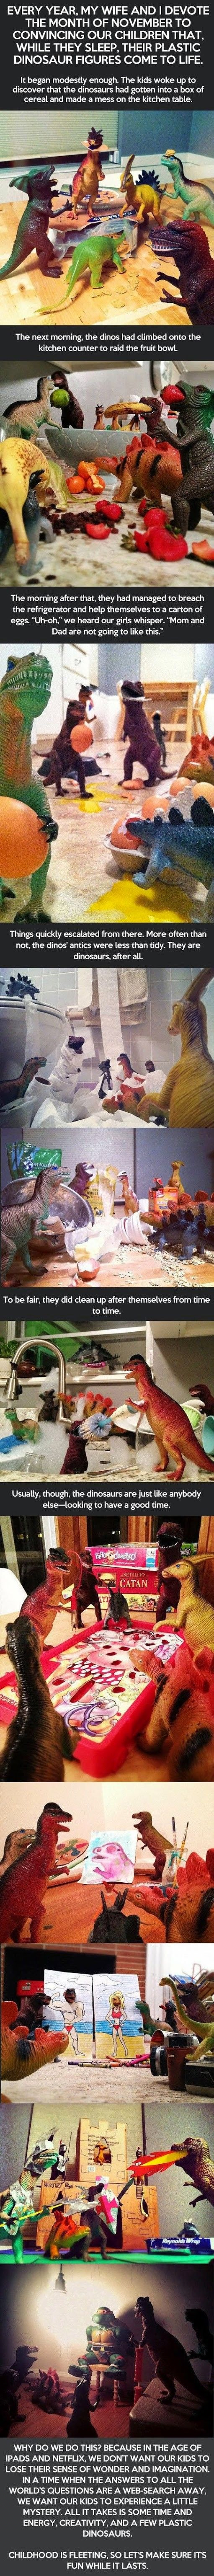 """(Pb) Little Helpers ♥ on Pinterest   @djohnisee ~ PIC:  infographic: Dedicate month of November to """"Dinosaur Figures Come Alive"""" with antics & imagination."""